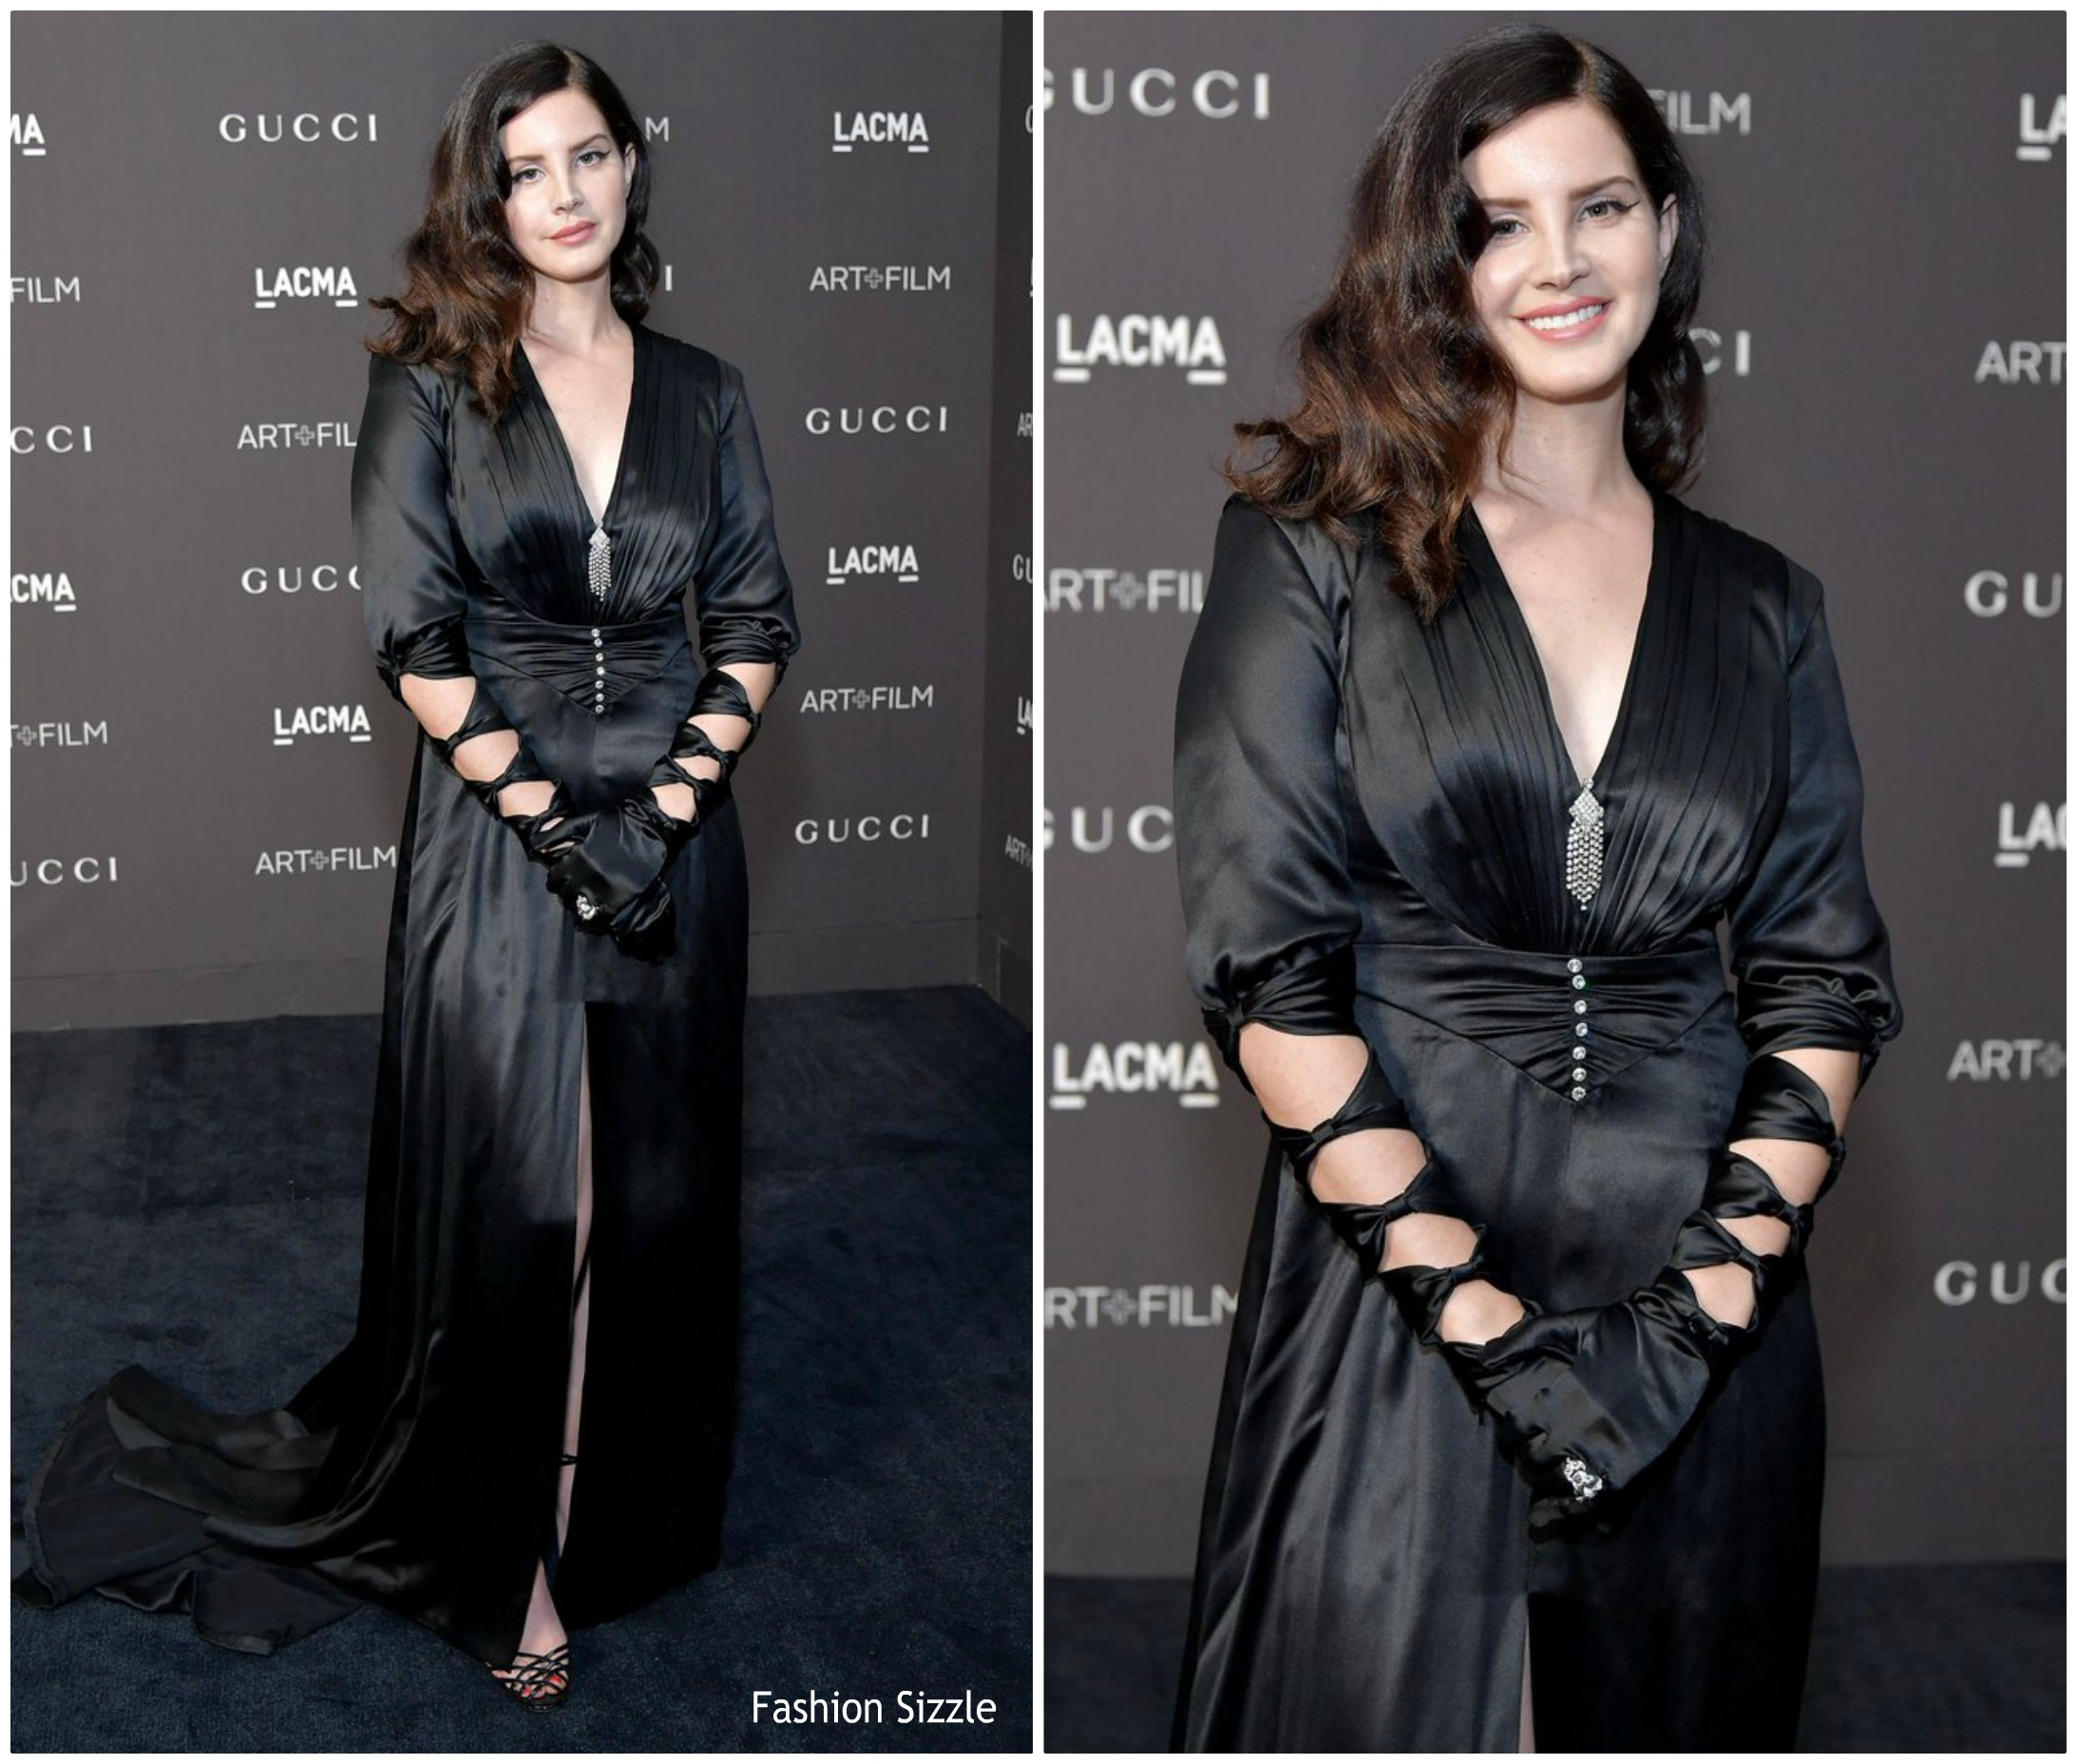 lana-del-rey-in-gucci-2018-lacma-art-film-gala